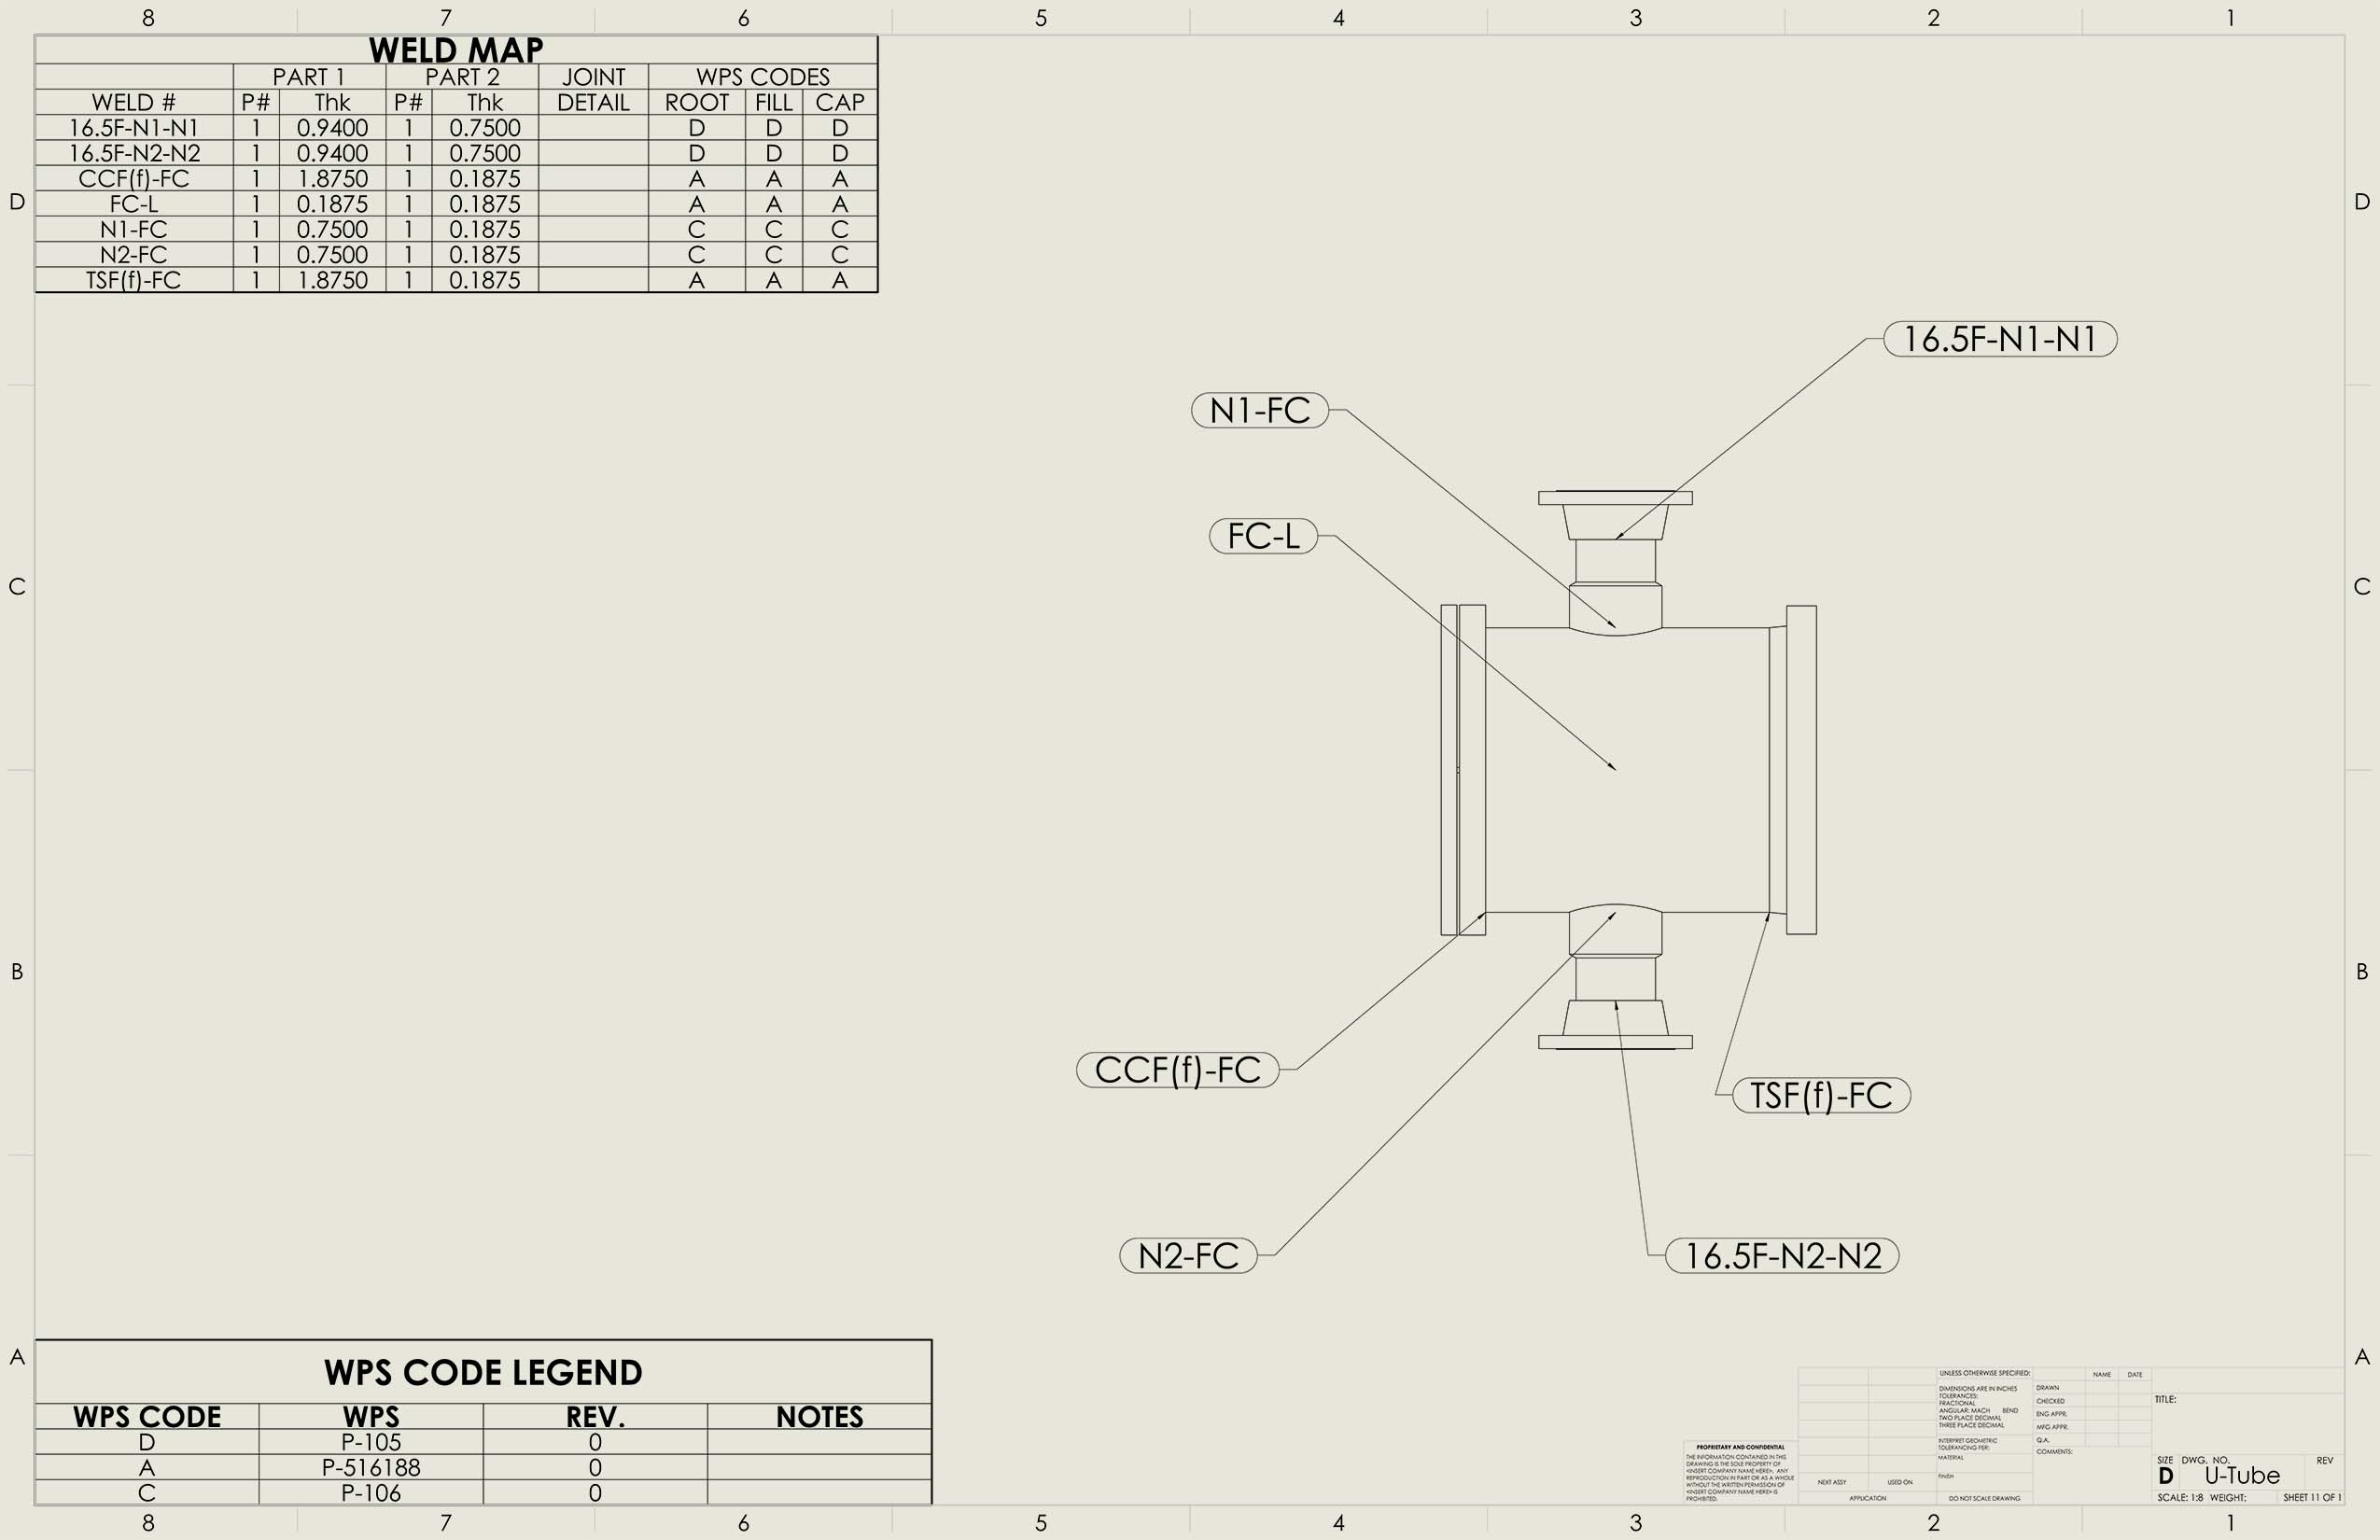 Shopfloor Integrates With COMPRESS and SolidWorks to Generate Drawings and Weld Maps Automatically